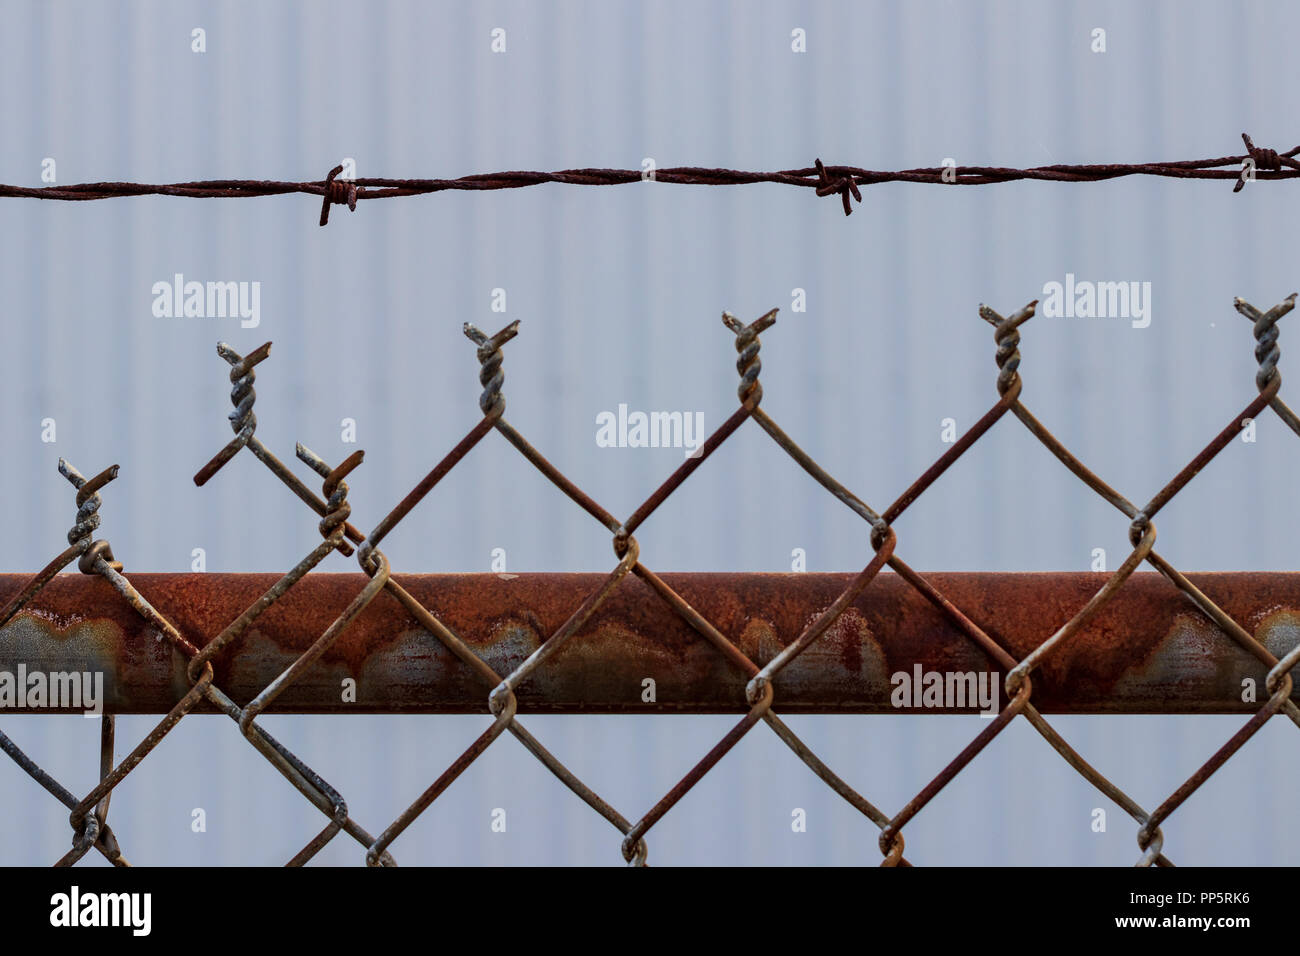 Old Rusty Chain Link Barbed Wire Fence With White Wall Stock Photo Alamy